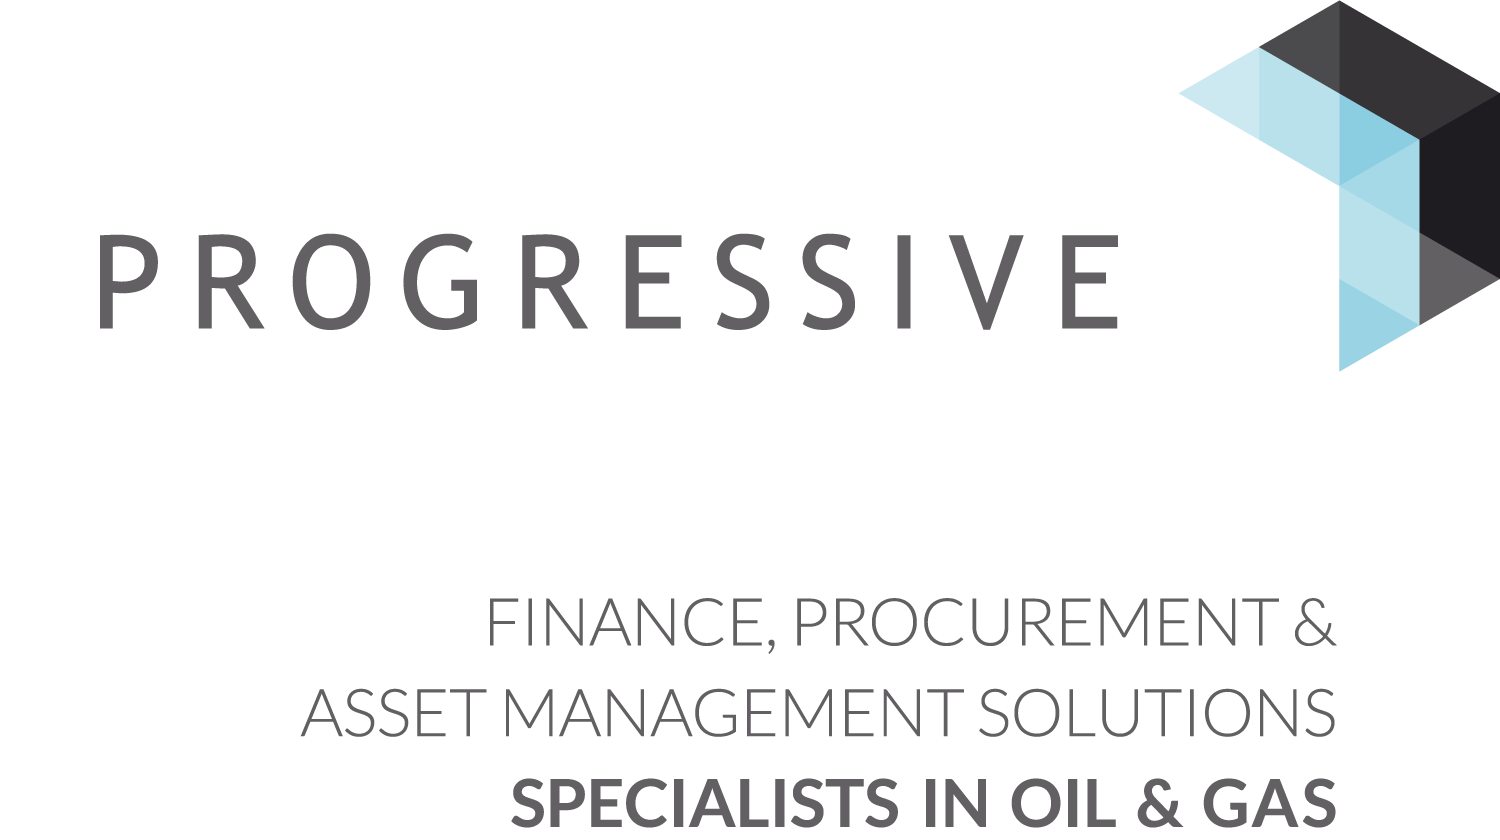 Progressive logo and strapline